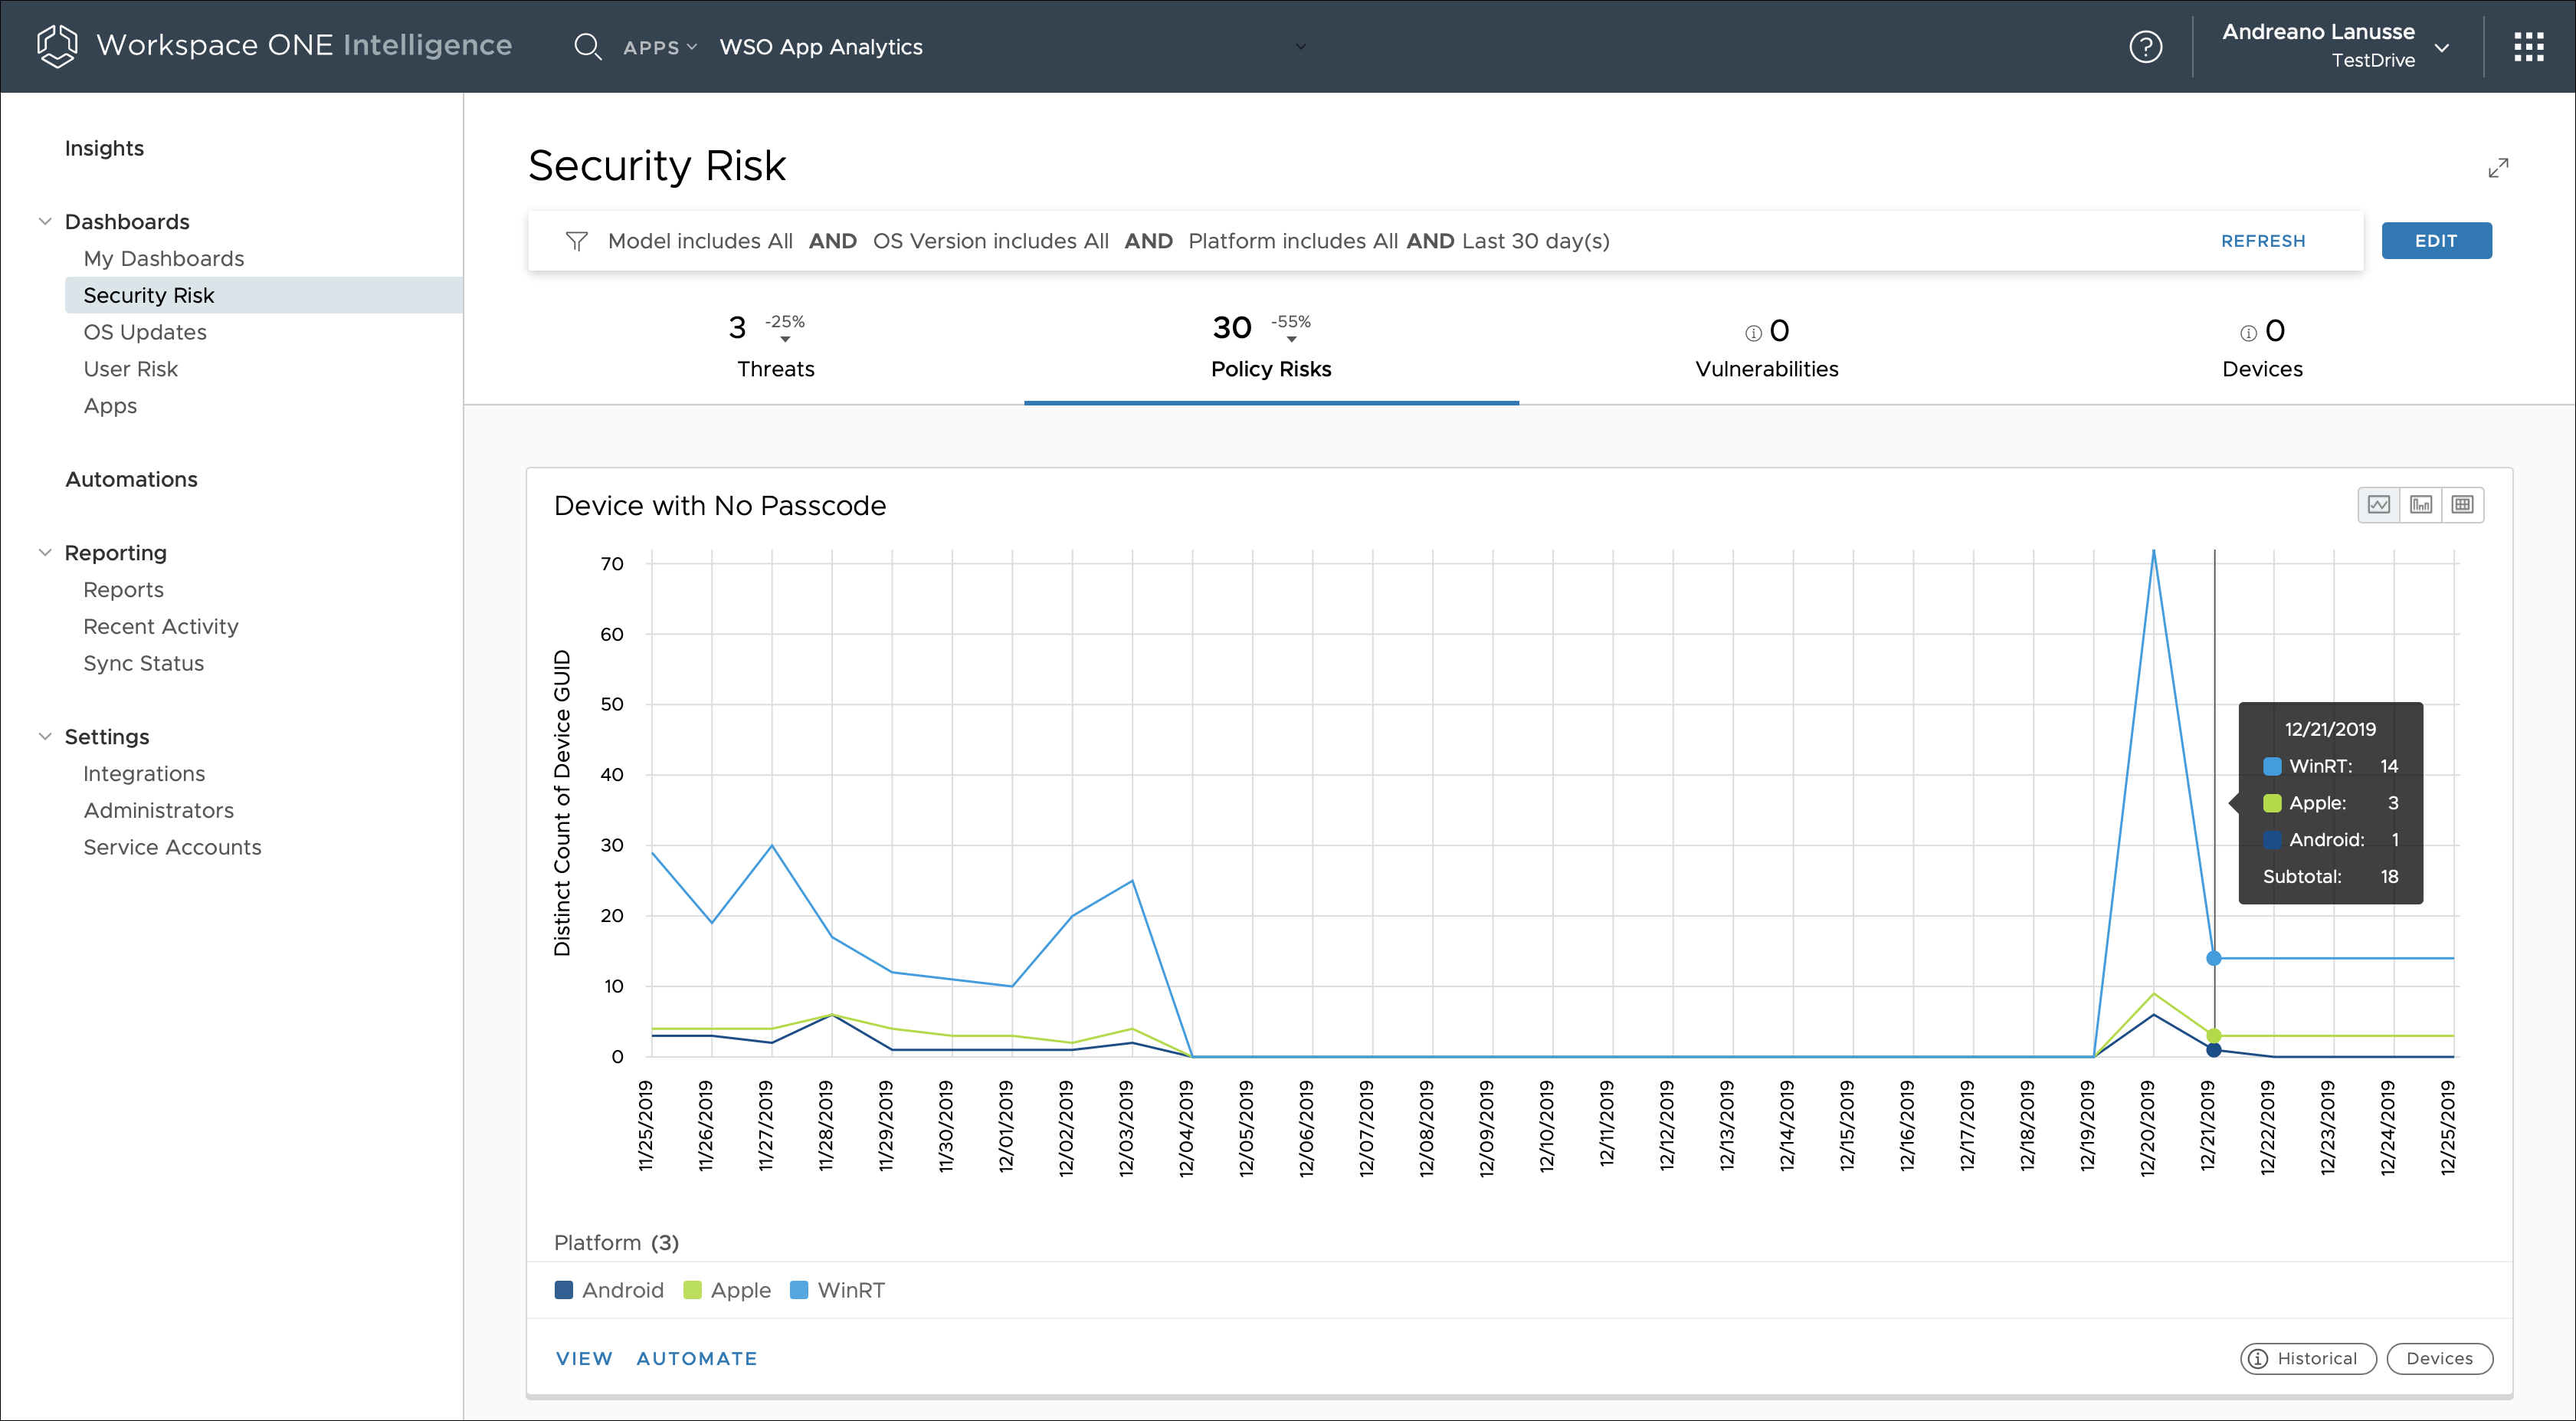 Device Passcode Risk Over Time, Displayed in the Security Risk Dashboard